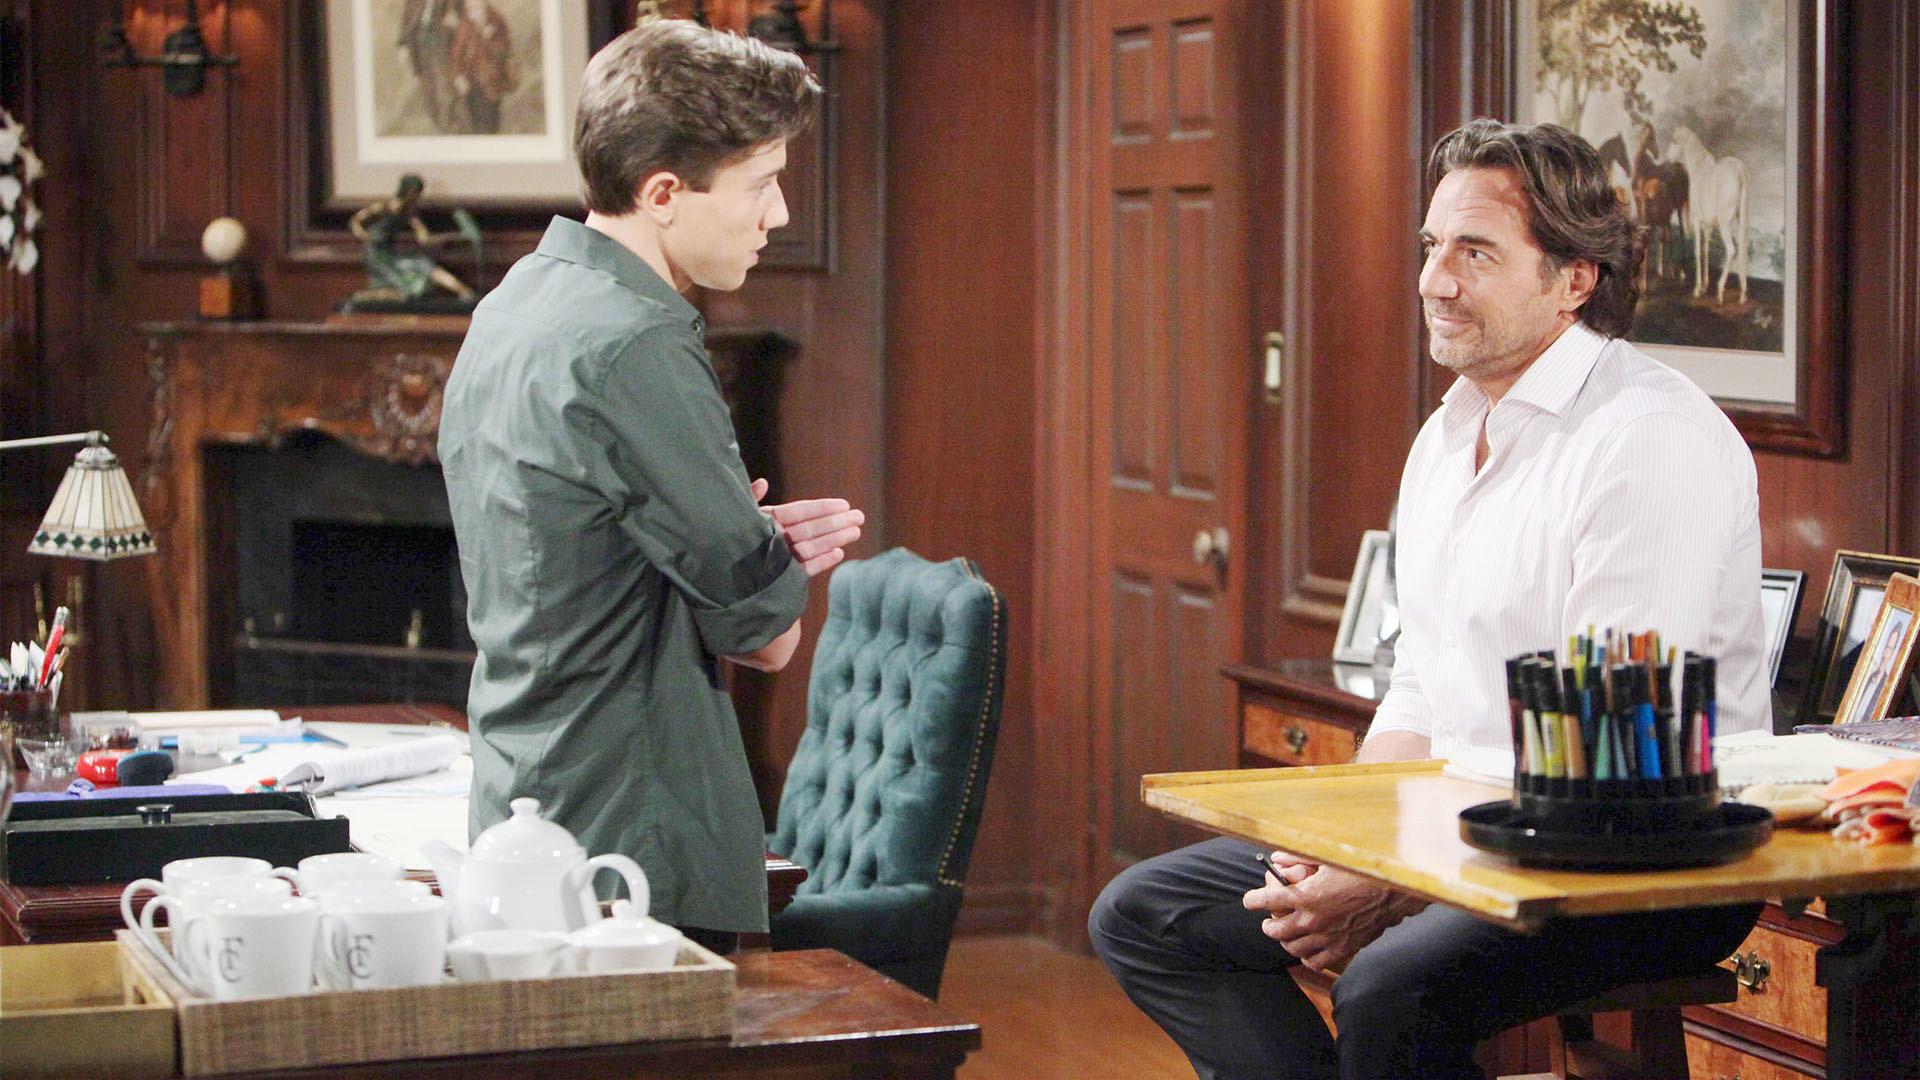 Ridge garners a new perspective when he learns of Brooke and Bill's current circumstance.